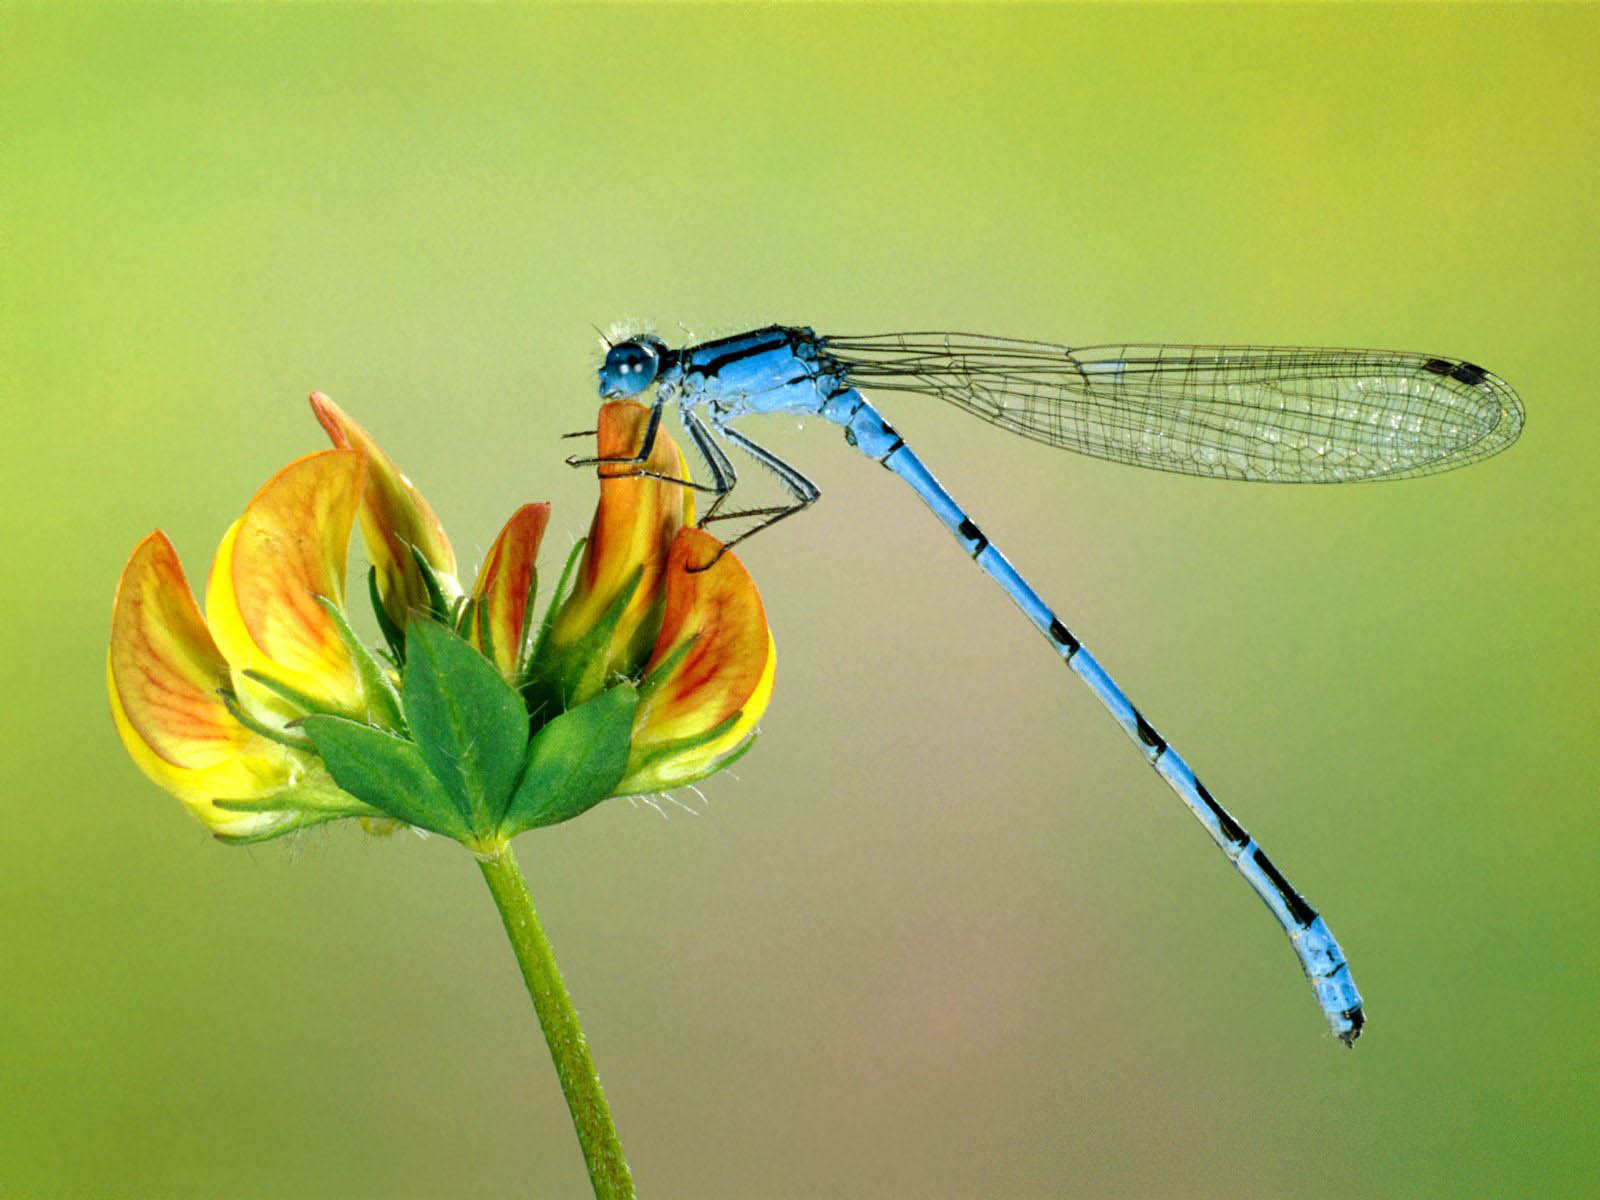 Dragonfly Wallpapers Backgrounds PhotosImages and Pictures for 1600x1200